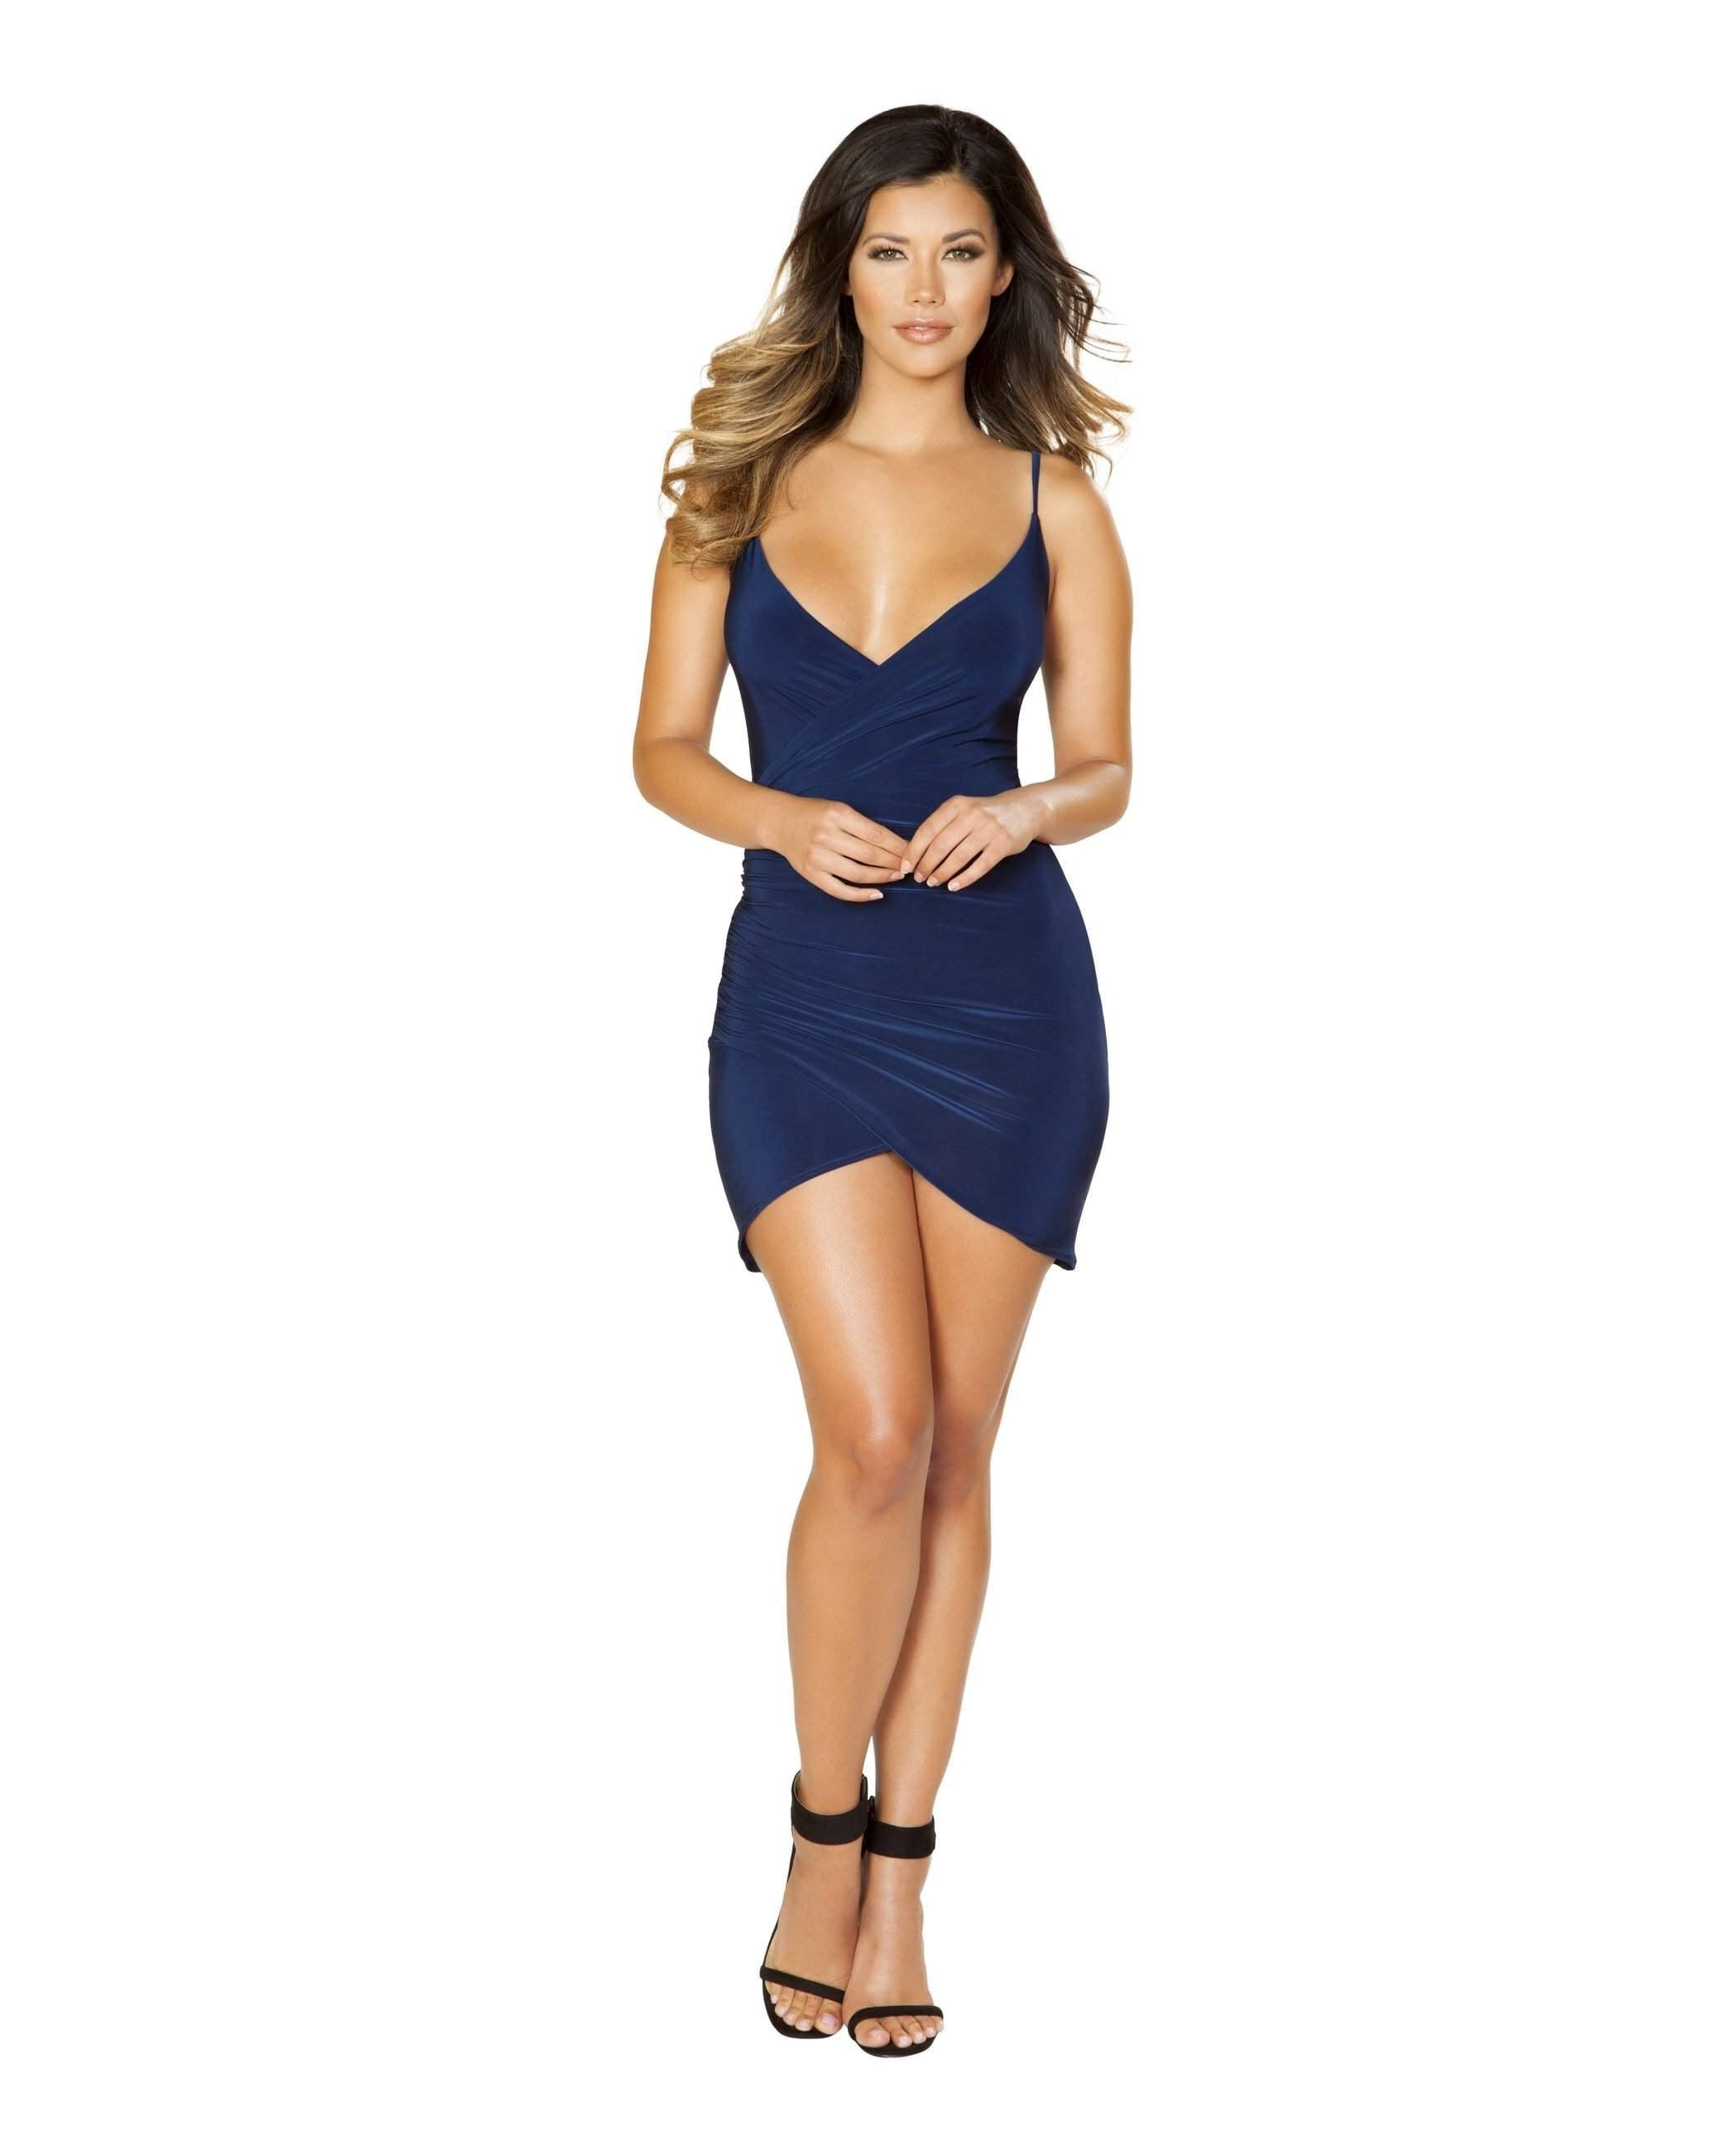 Spaghetti Strap Dress with Overlapping Front club wear Size smallcolor blueNakees